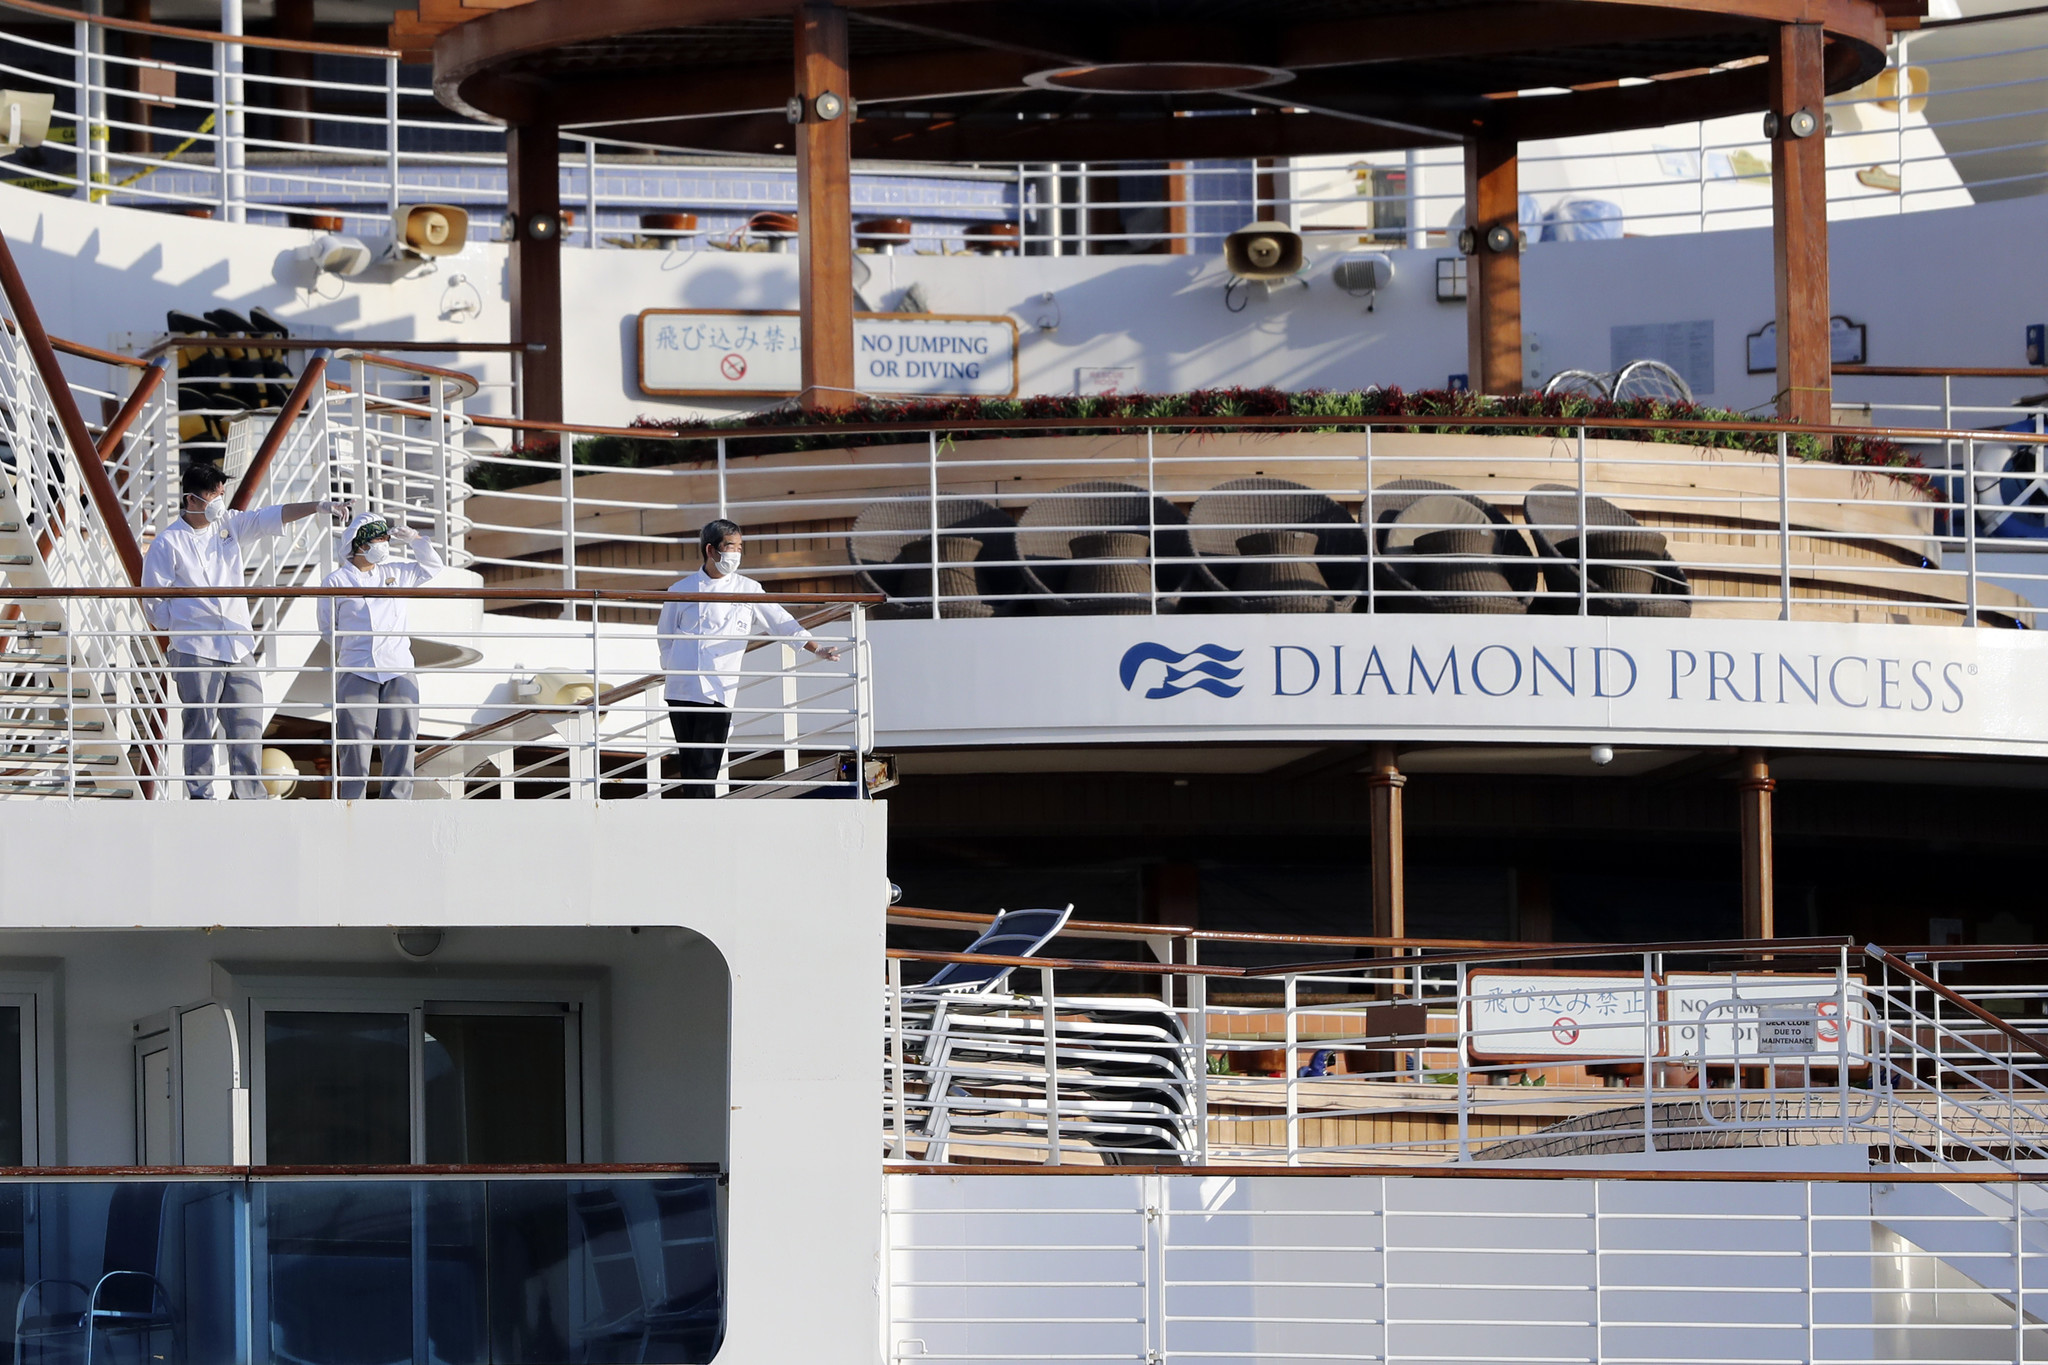 Third passenger of Diamond Princess cruise ship quarantined for coronavirus has died, Japan health officials say